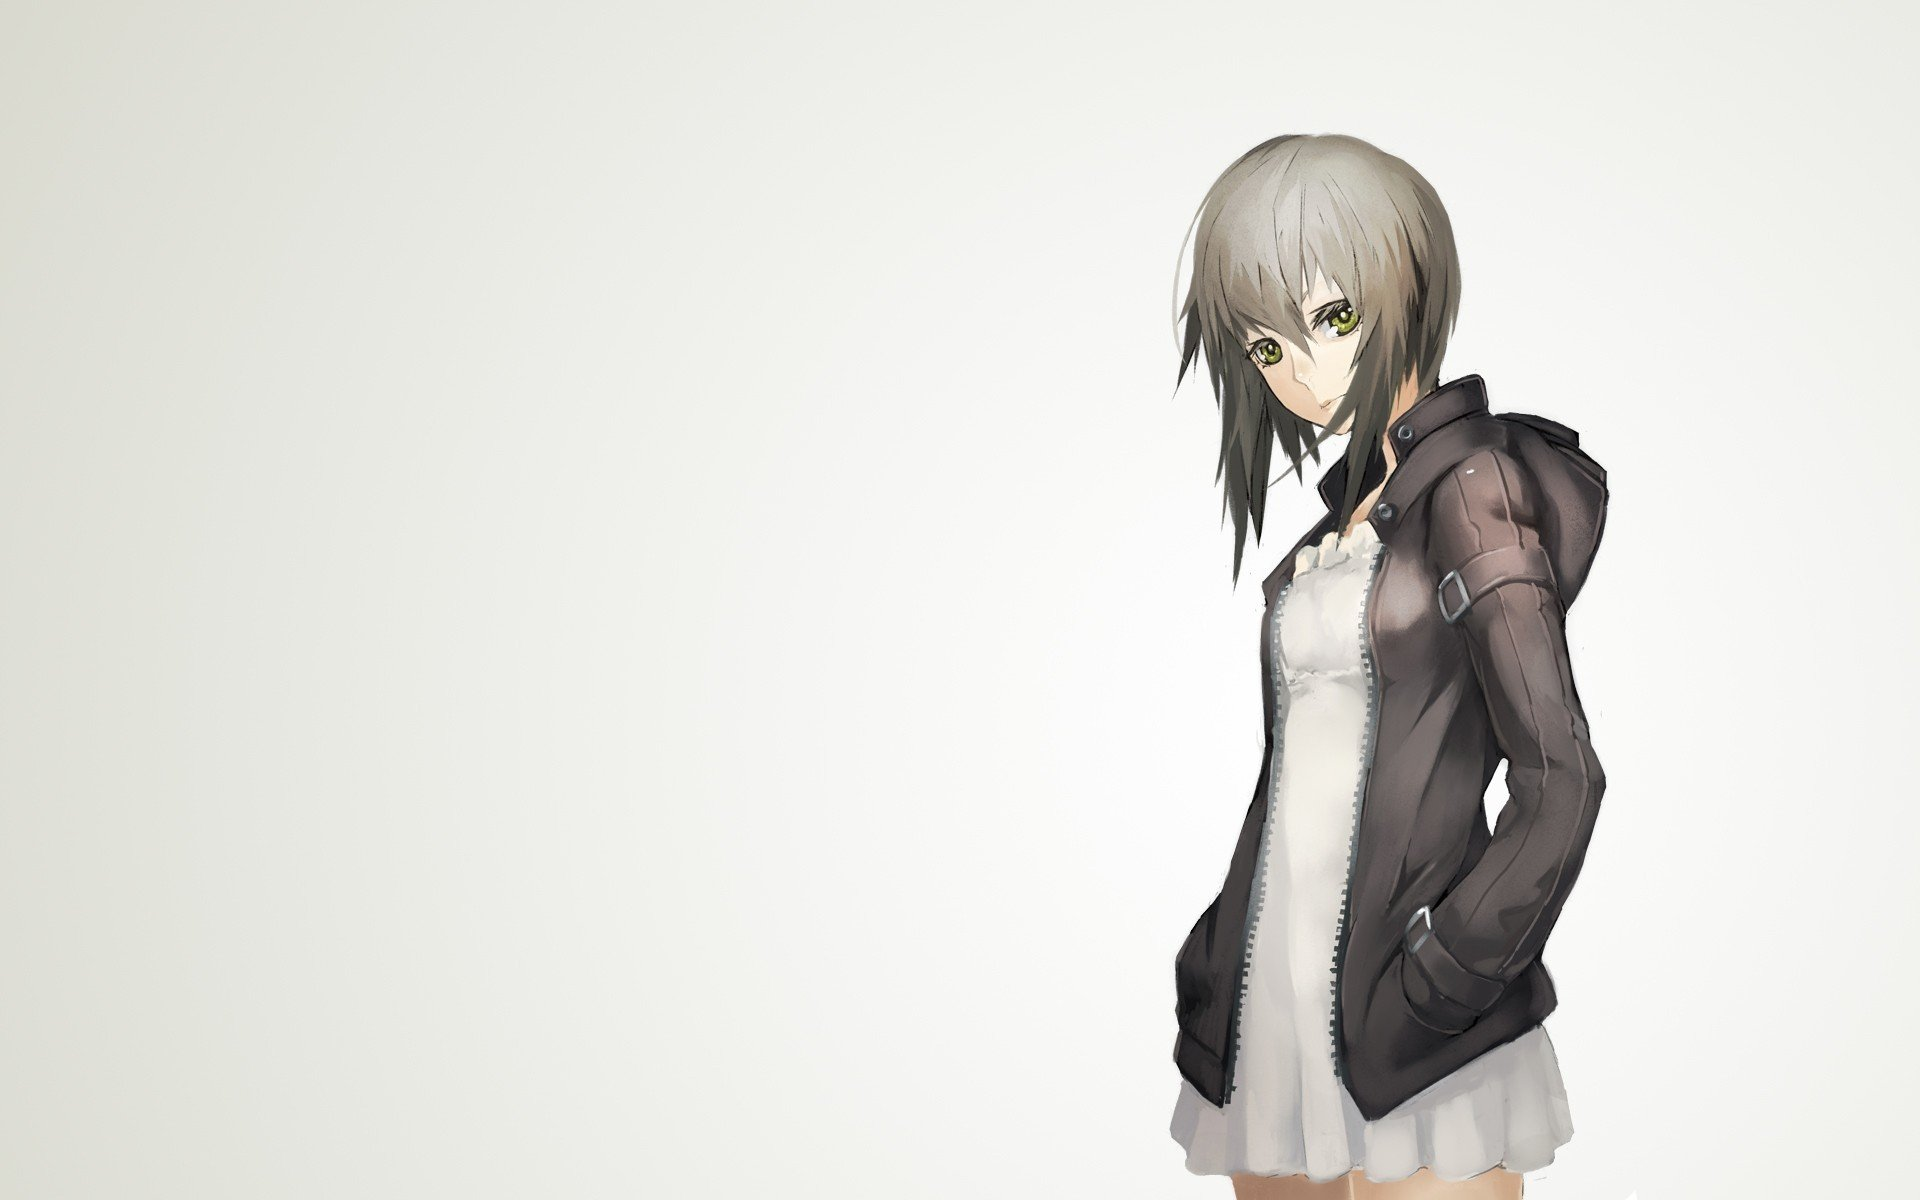 Anime Characters Jacket : Dress jackets green eyes short hair gray simple